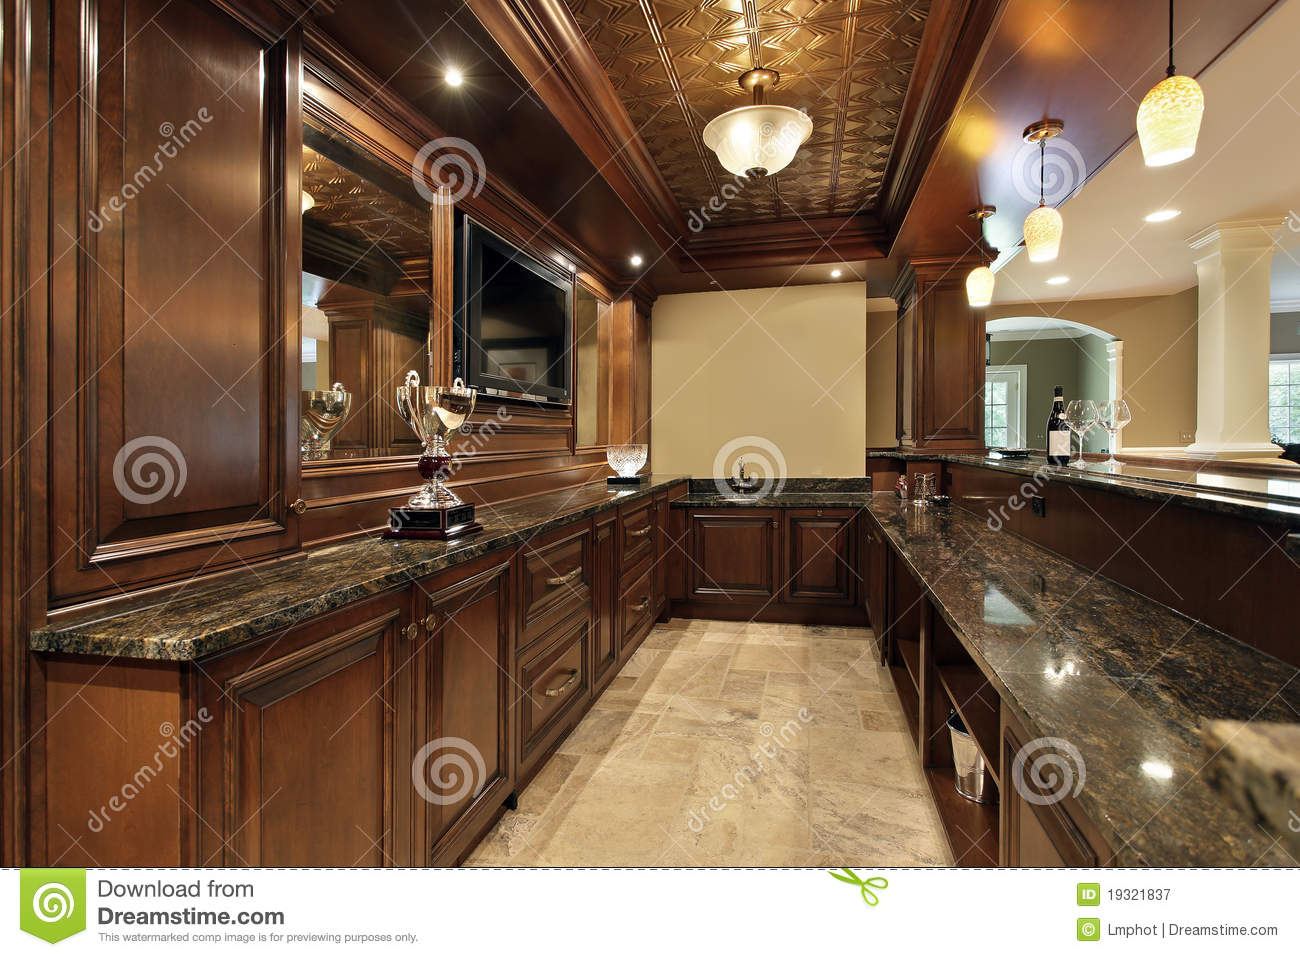 Bar en sous sol de maison de luxe photographie stock libre de droits image 19321837 for Bar sous sol maison